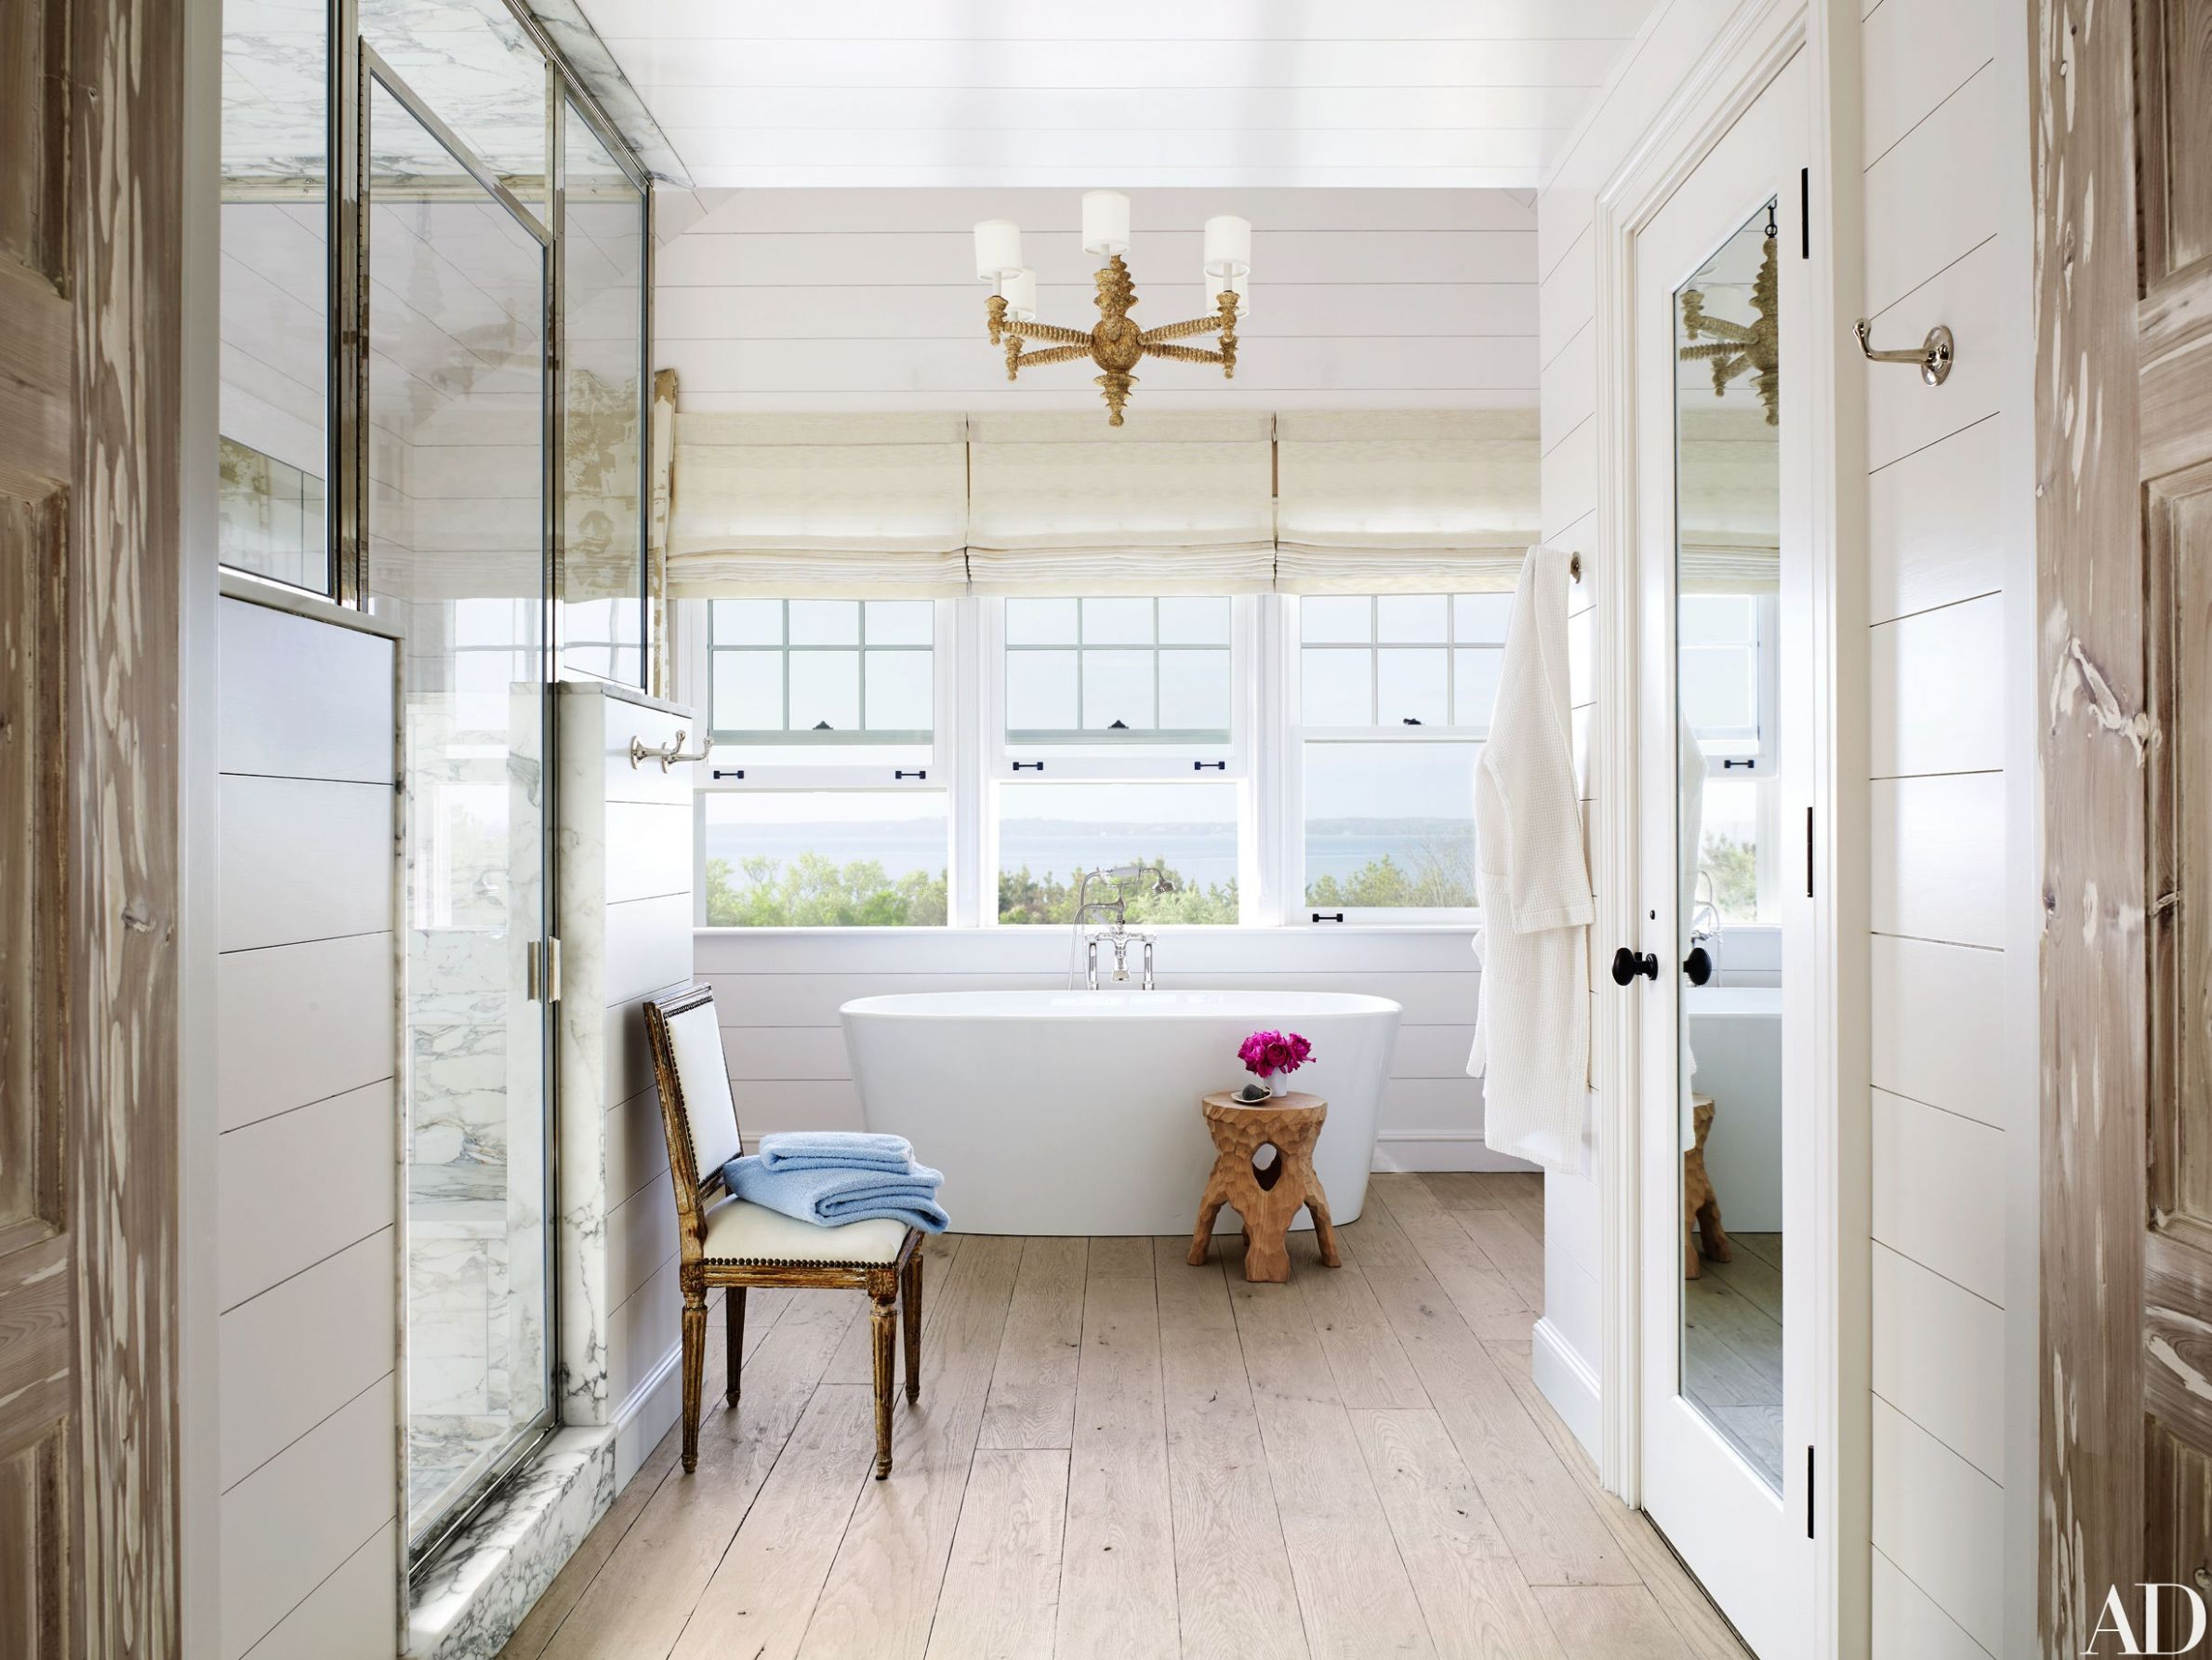 9 Bathroom Design Ideas to Inspire Your Next Renovation ..